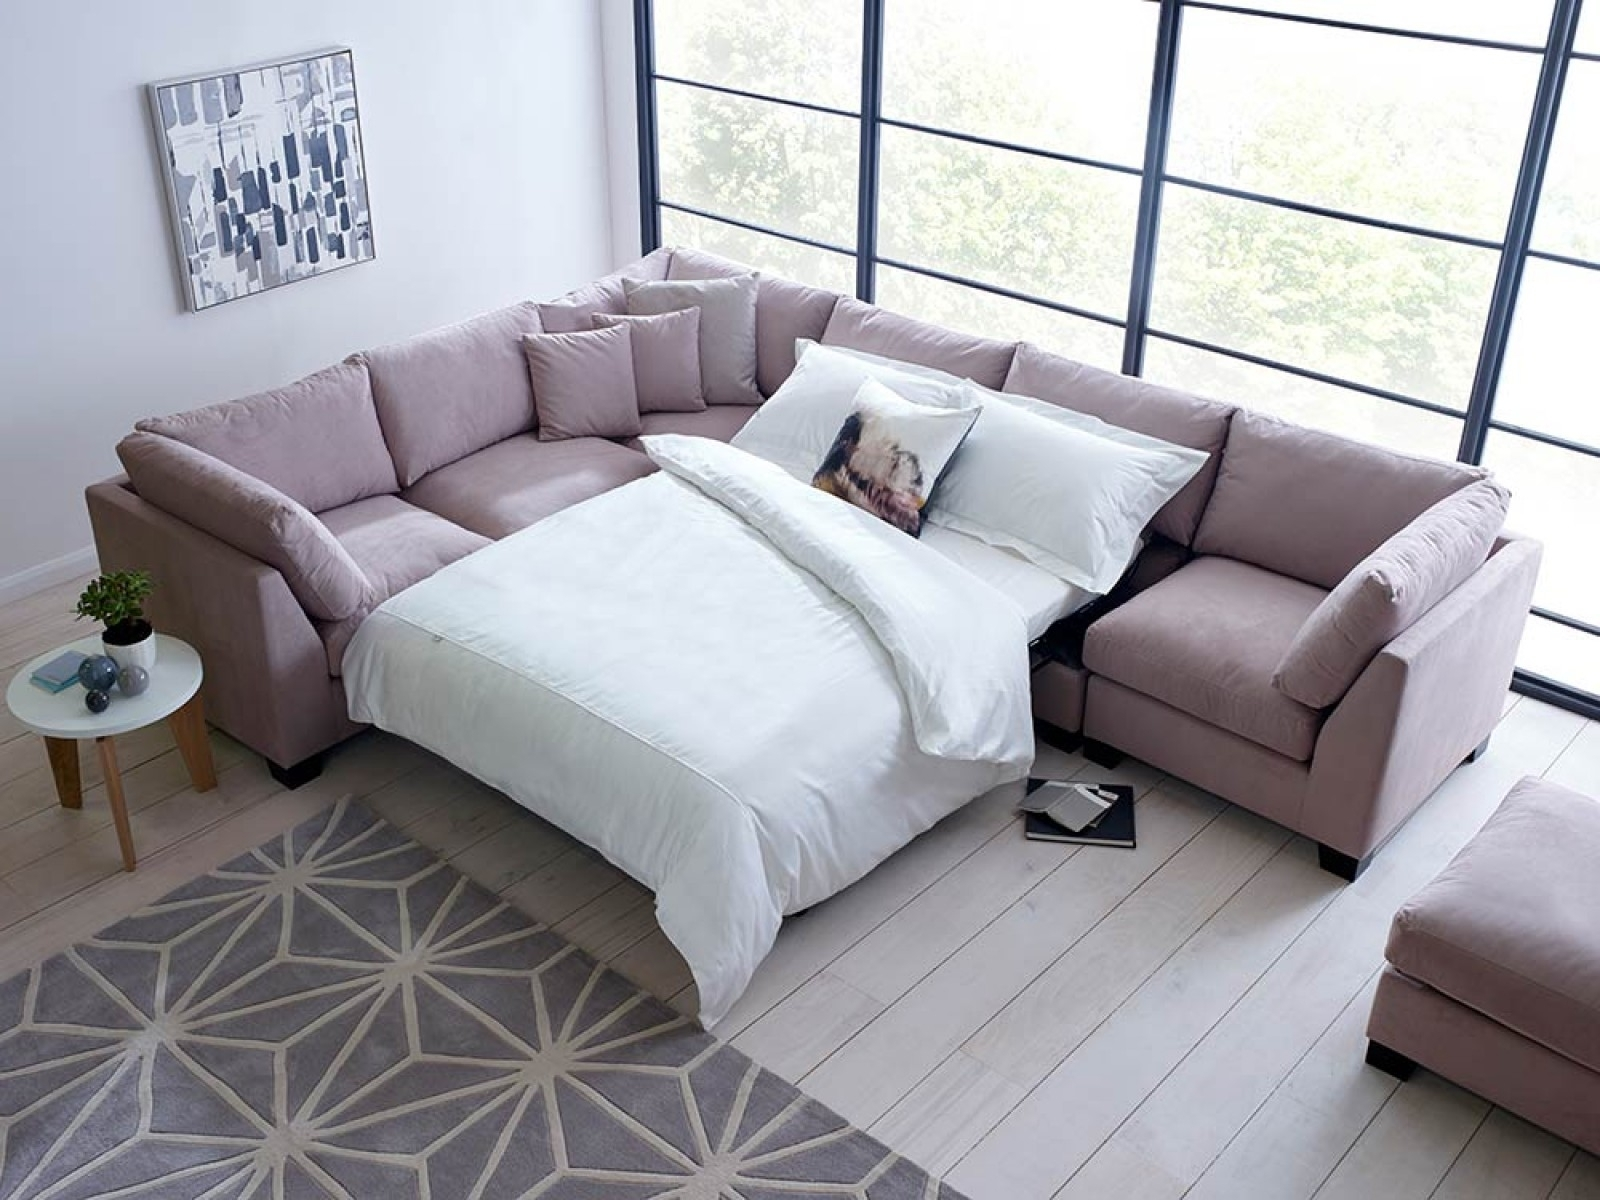 2019 Sofa : Corner Sofa Bed Yvette Corner Sofa Bed India Corner Sofa Within Sectional Sofas In Philippines (View 1 of 20)